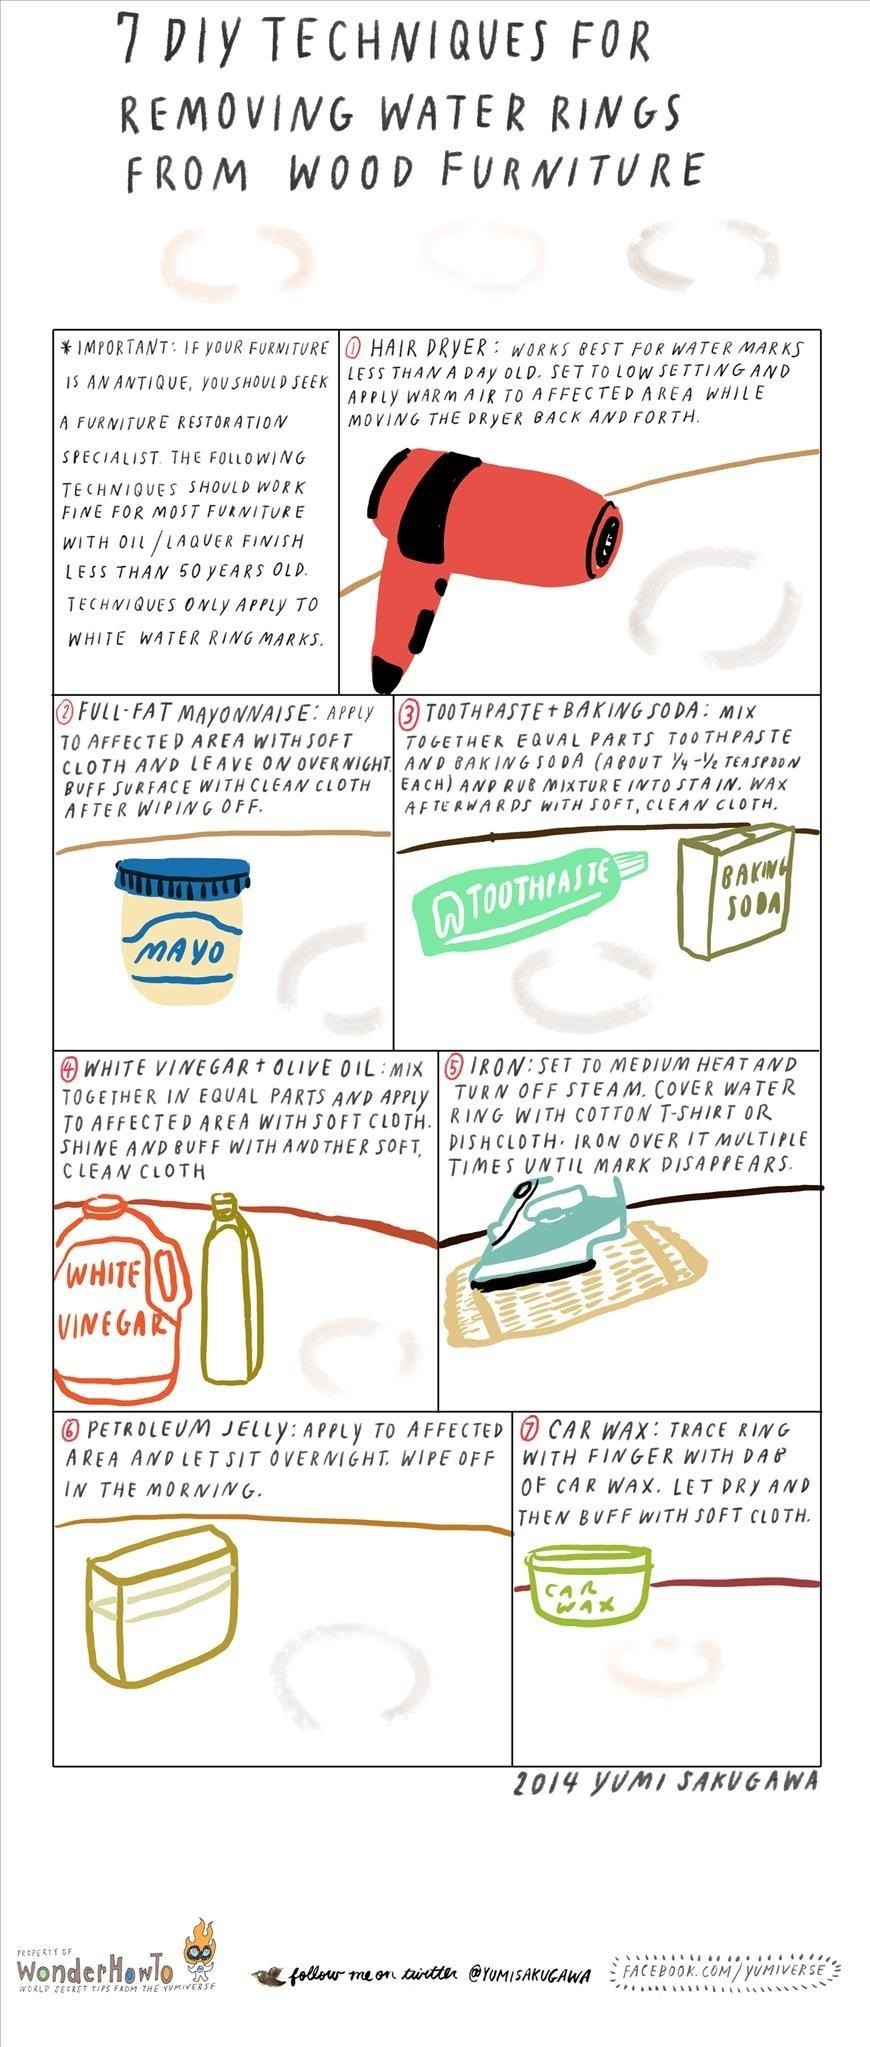 Click on image to enlarge. 7 Easy Ways to Remove Water Ring Marks from Wood Furniture   The